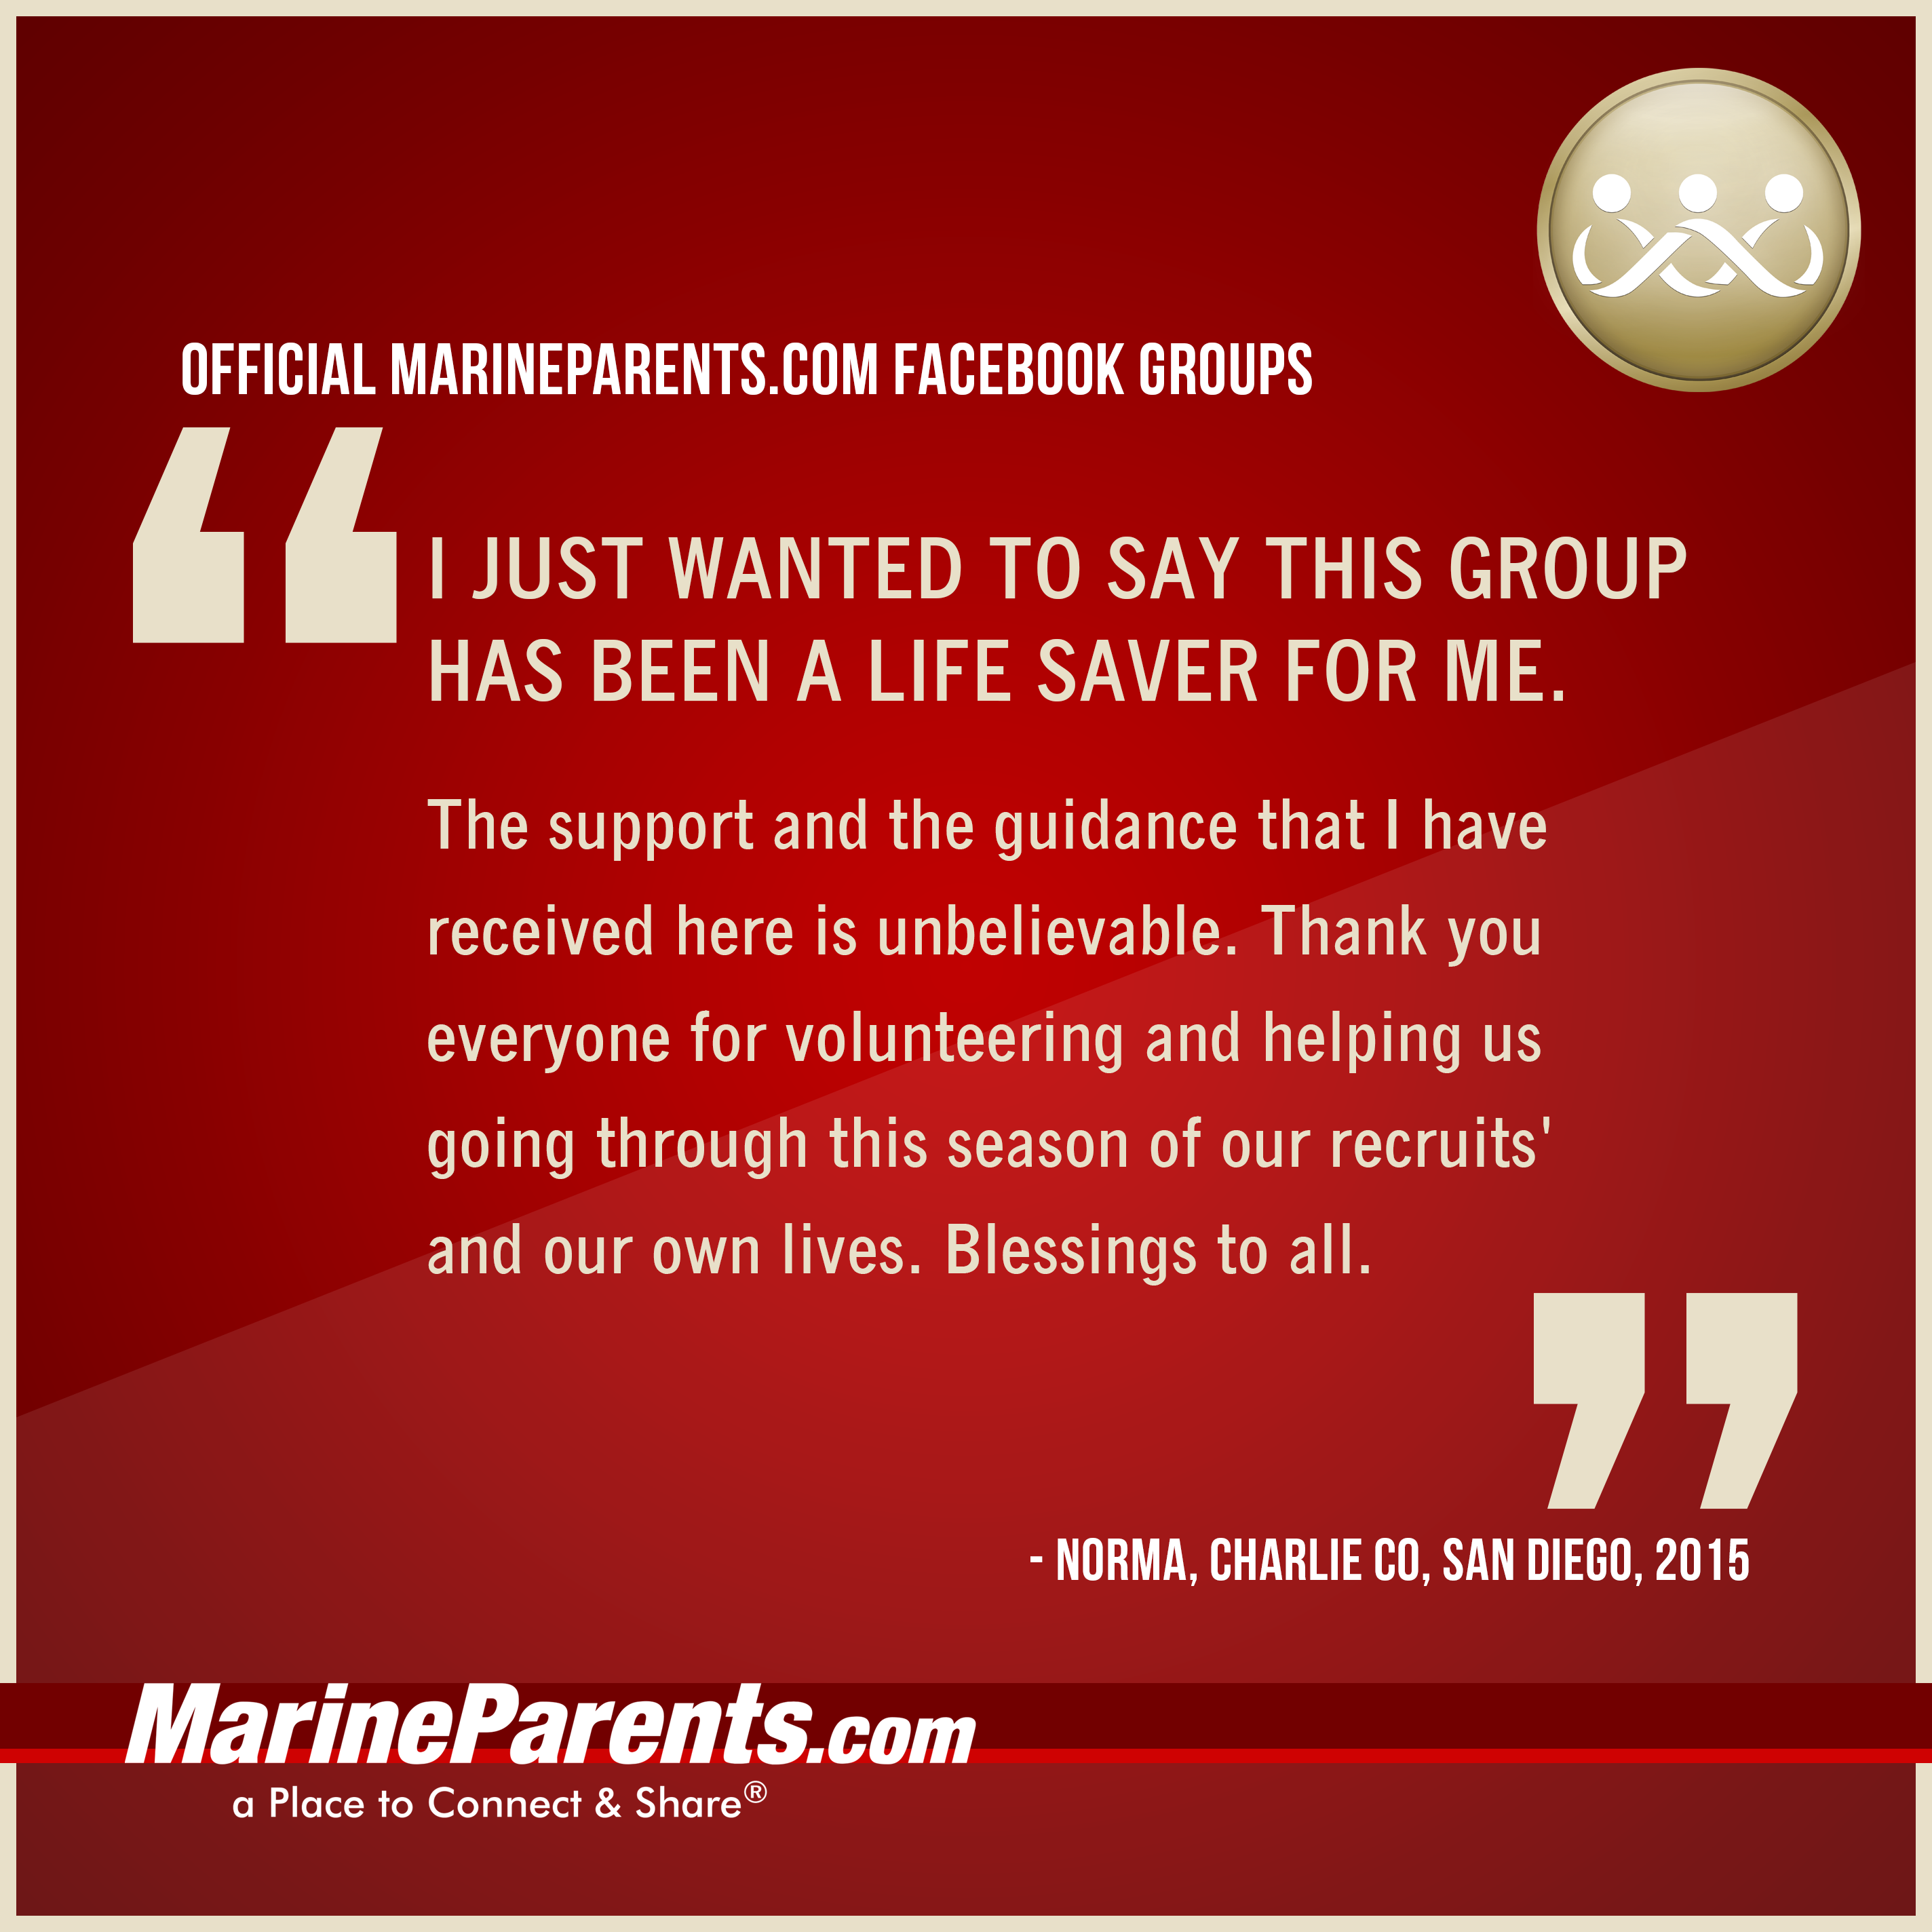 Quotes about MarineParents.com